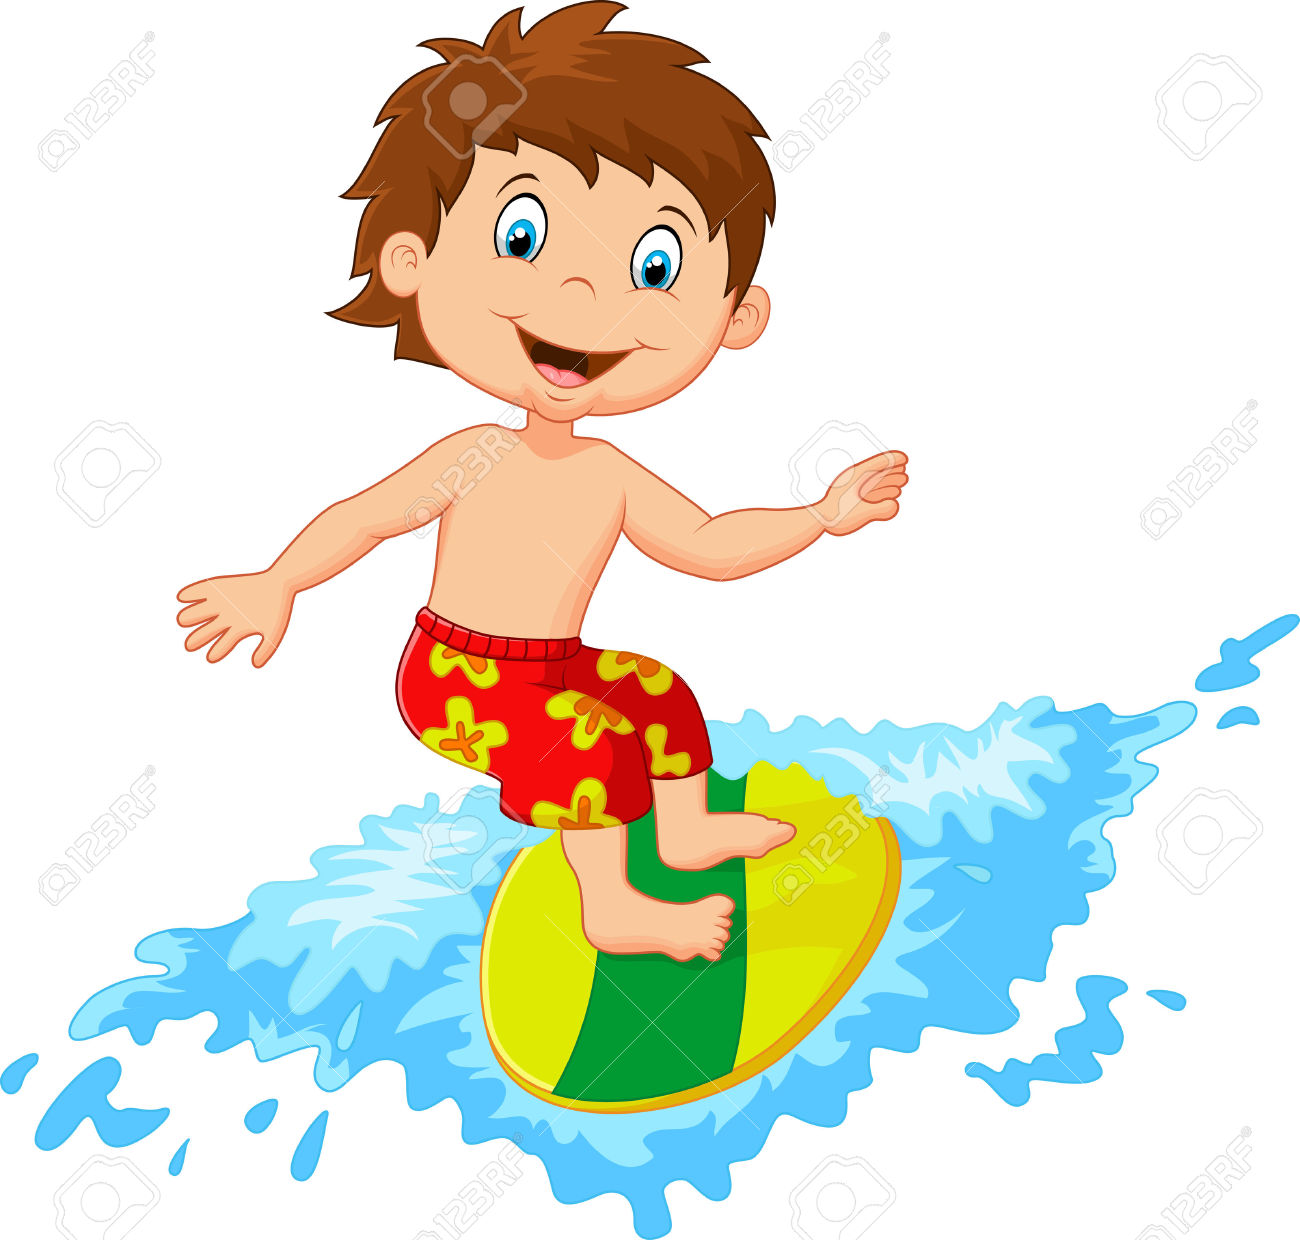 Kids on surfboard clipart clipart freeuse stock 517 Surfing Kids Stock Vector Illustration And Royalty Free ... clipart freeuse stock